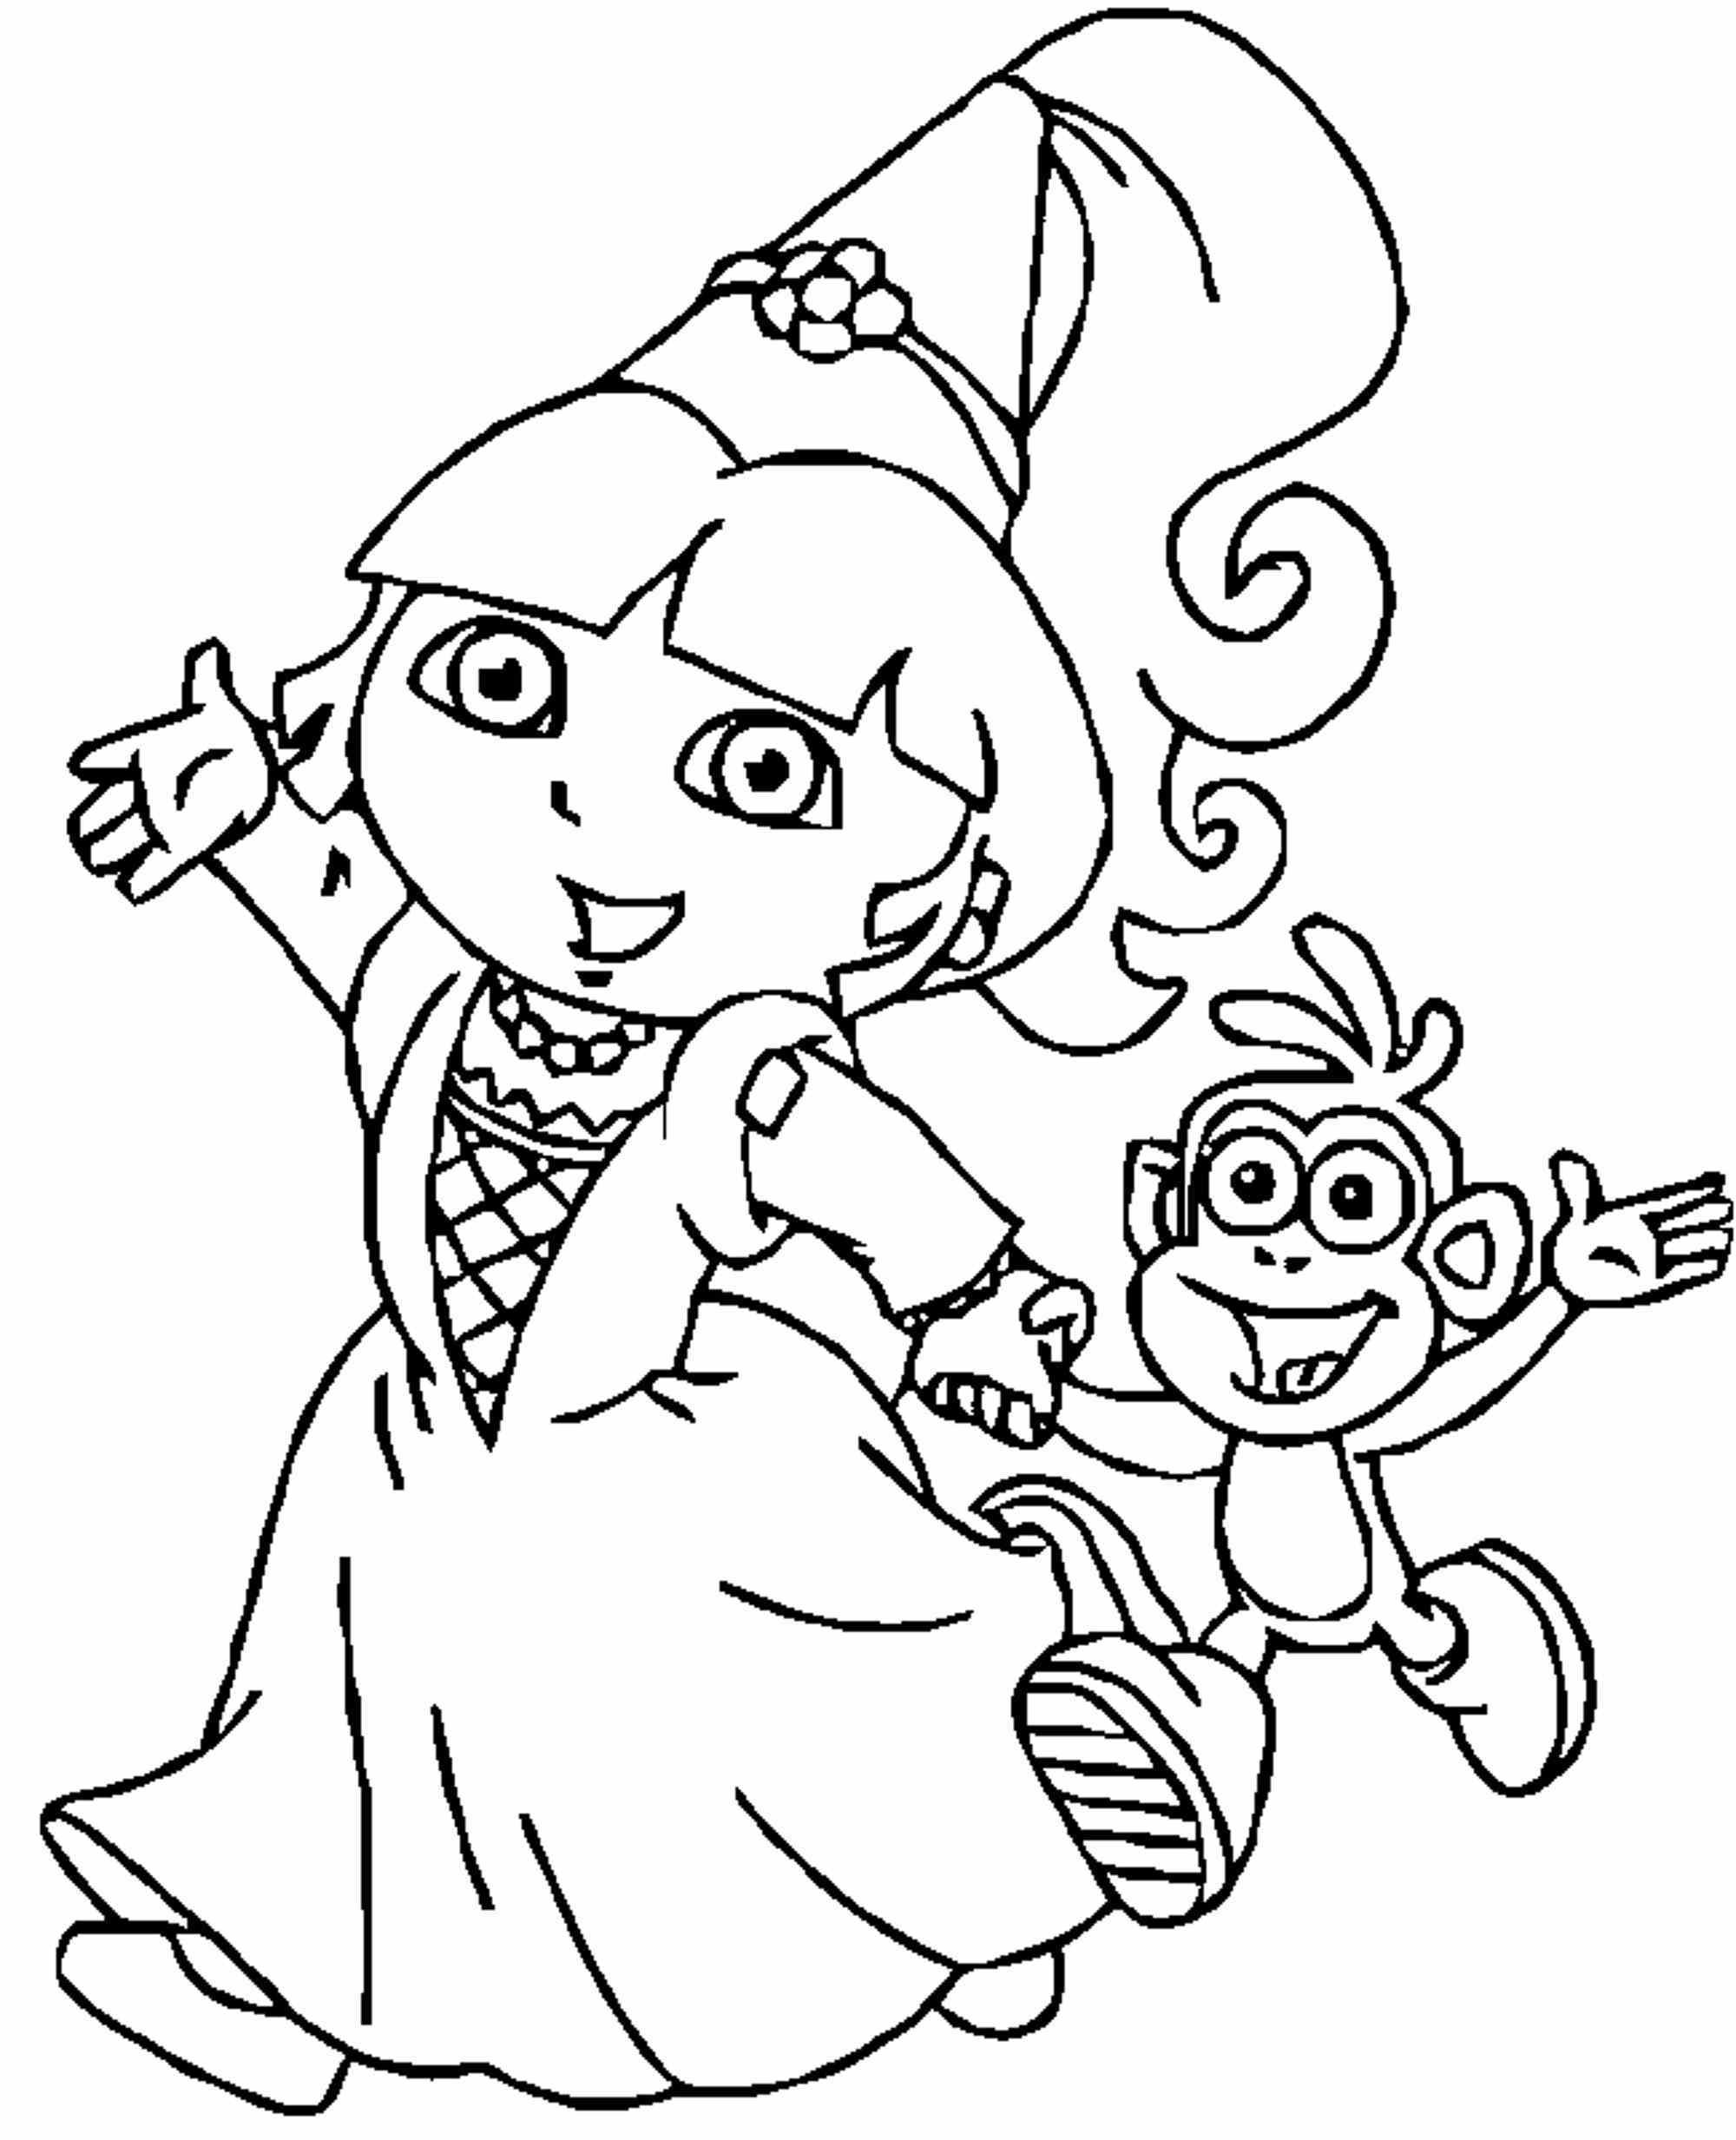 Dora and Friends Coloring Pages  Download 13i - Save it to your computer